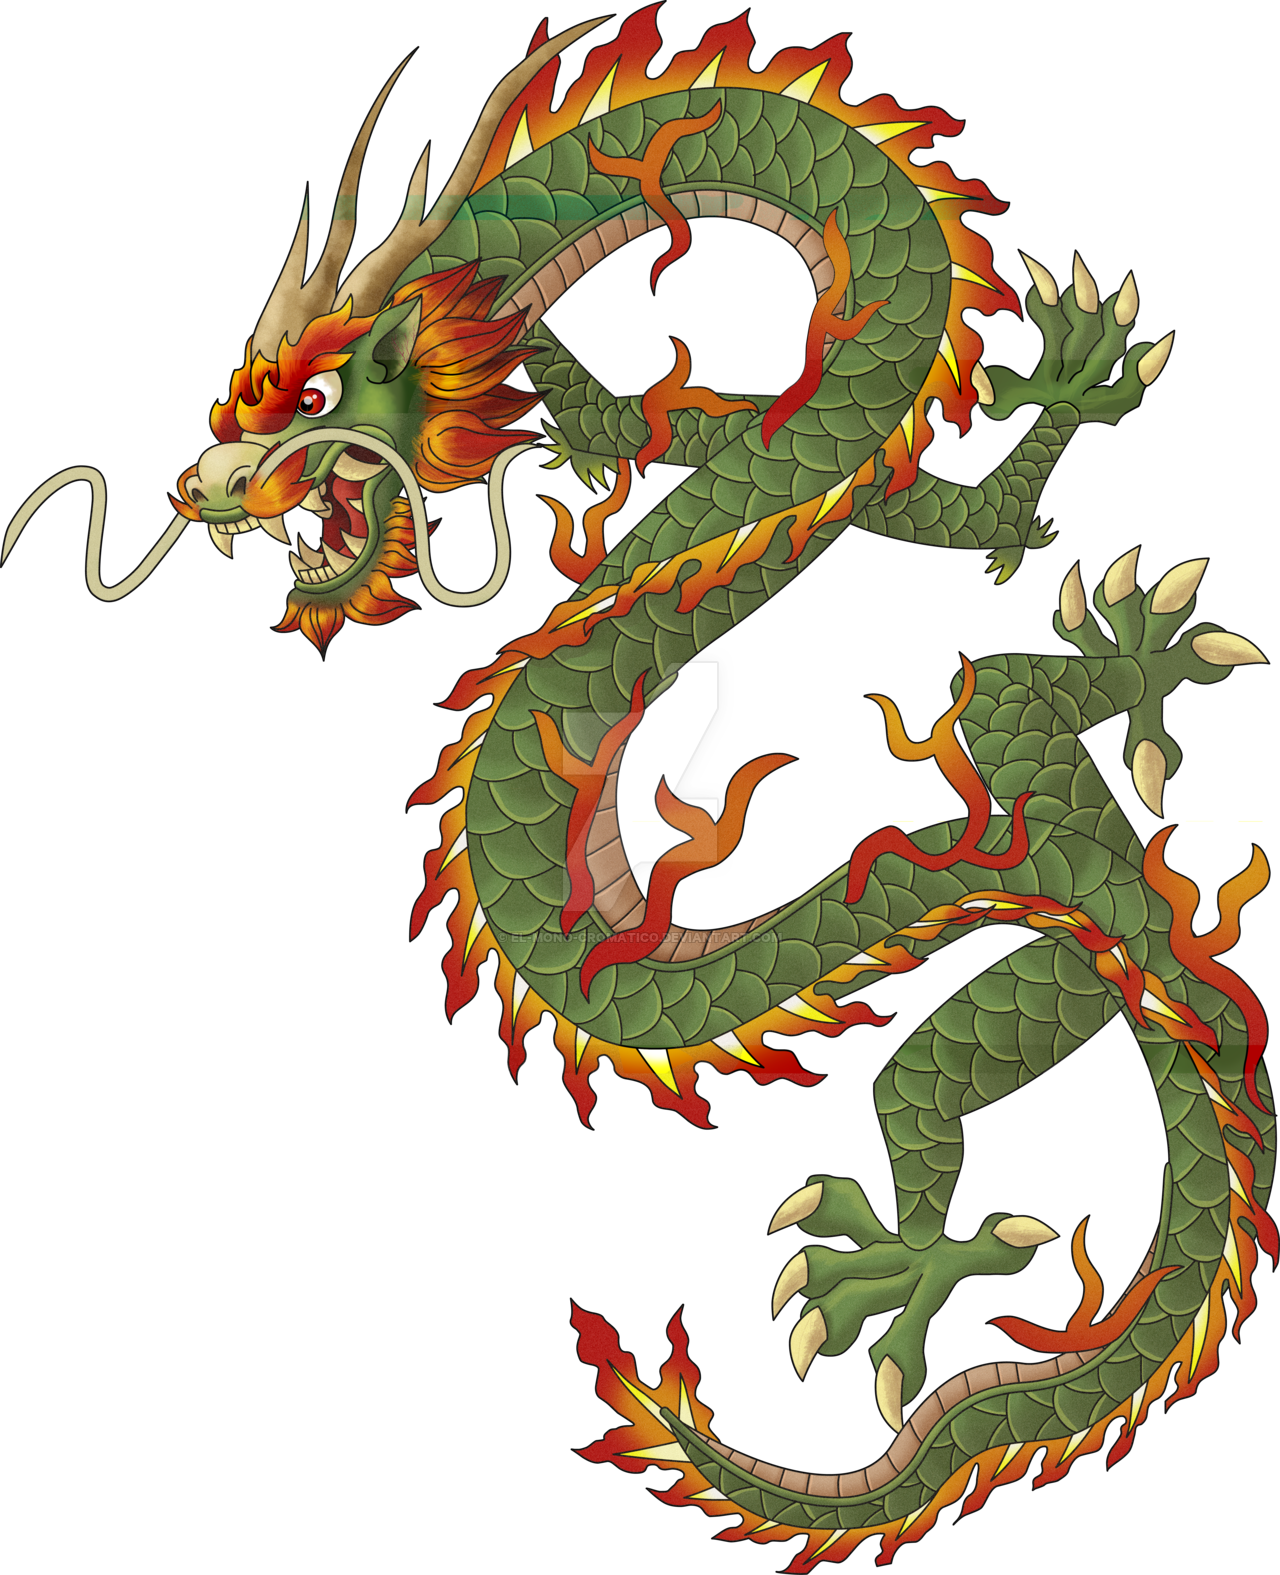 download chinese dragon png clipart hq png image freepngimg cheetah clipart for kids cheetah clipart for kids